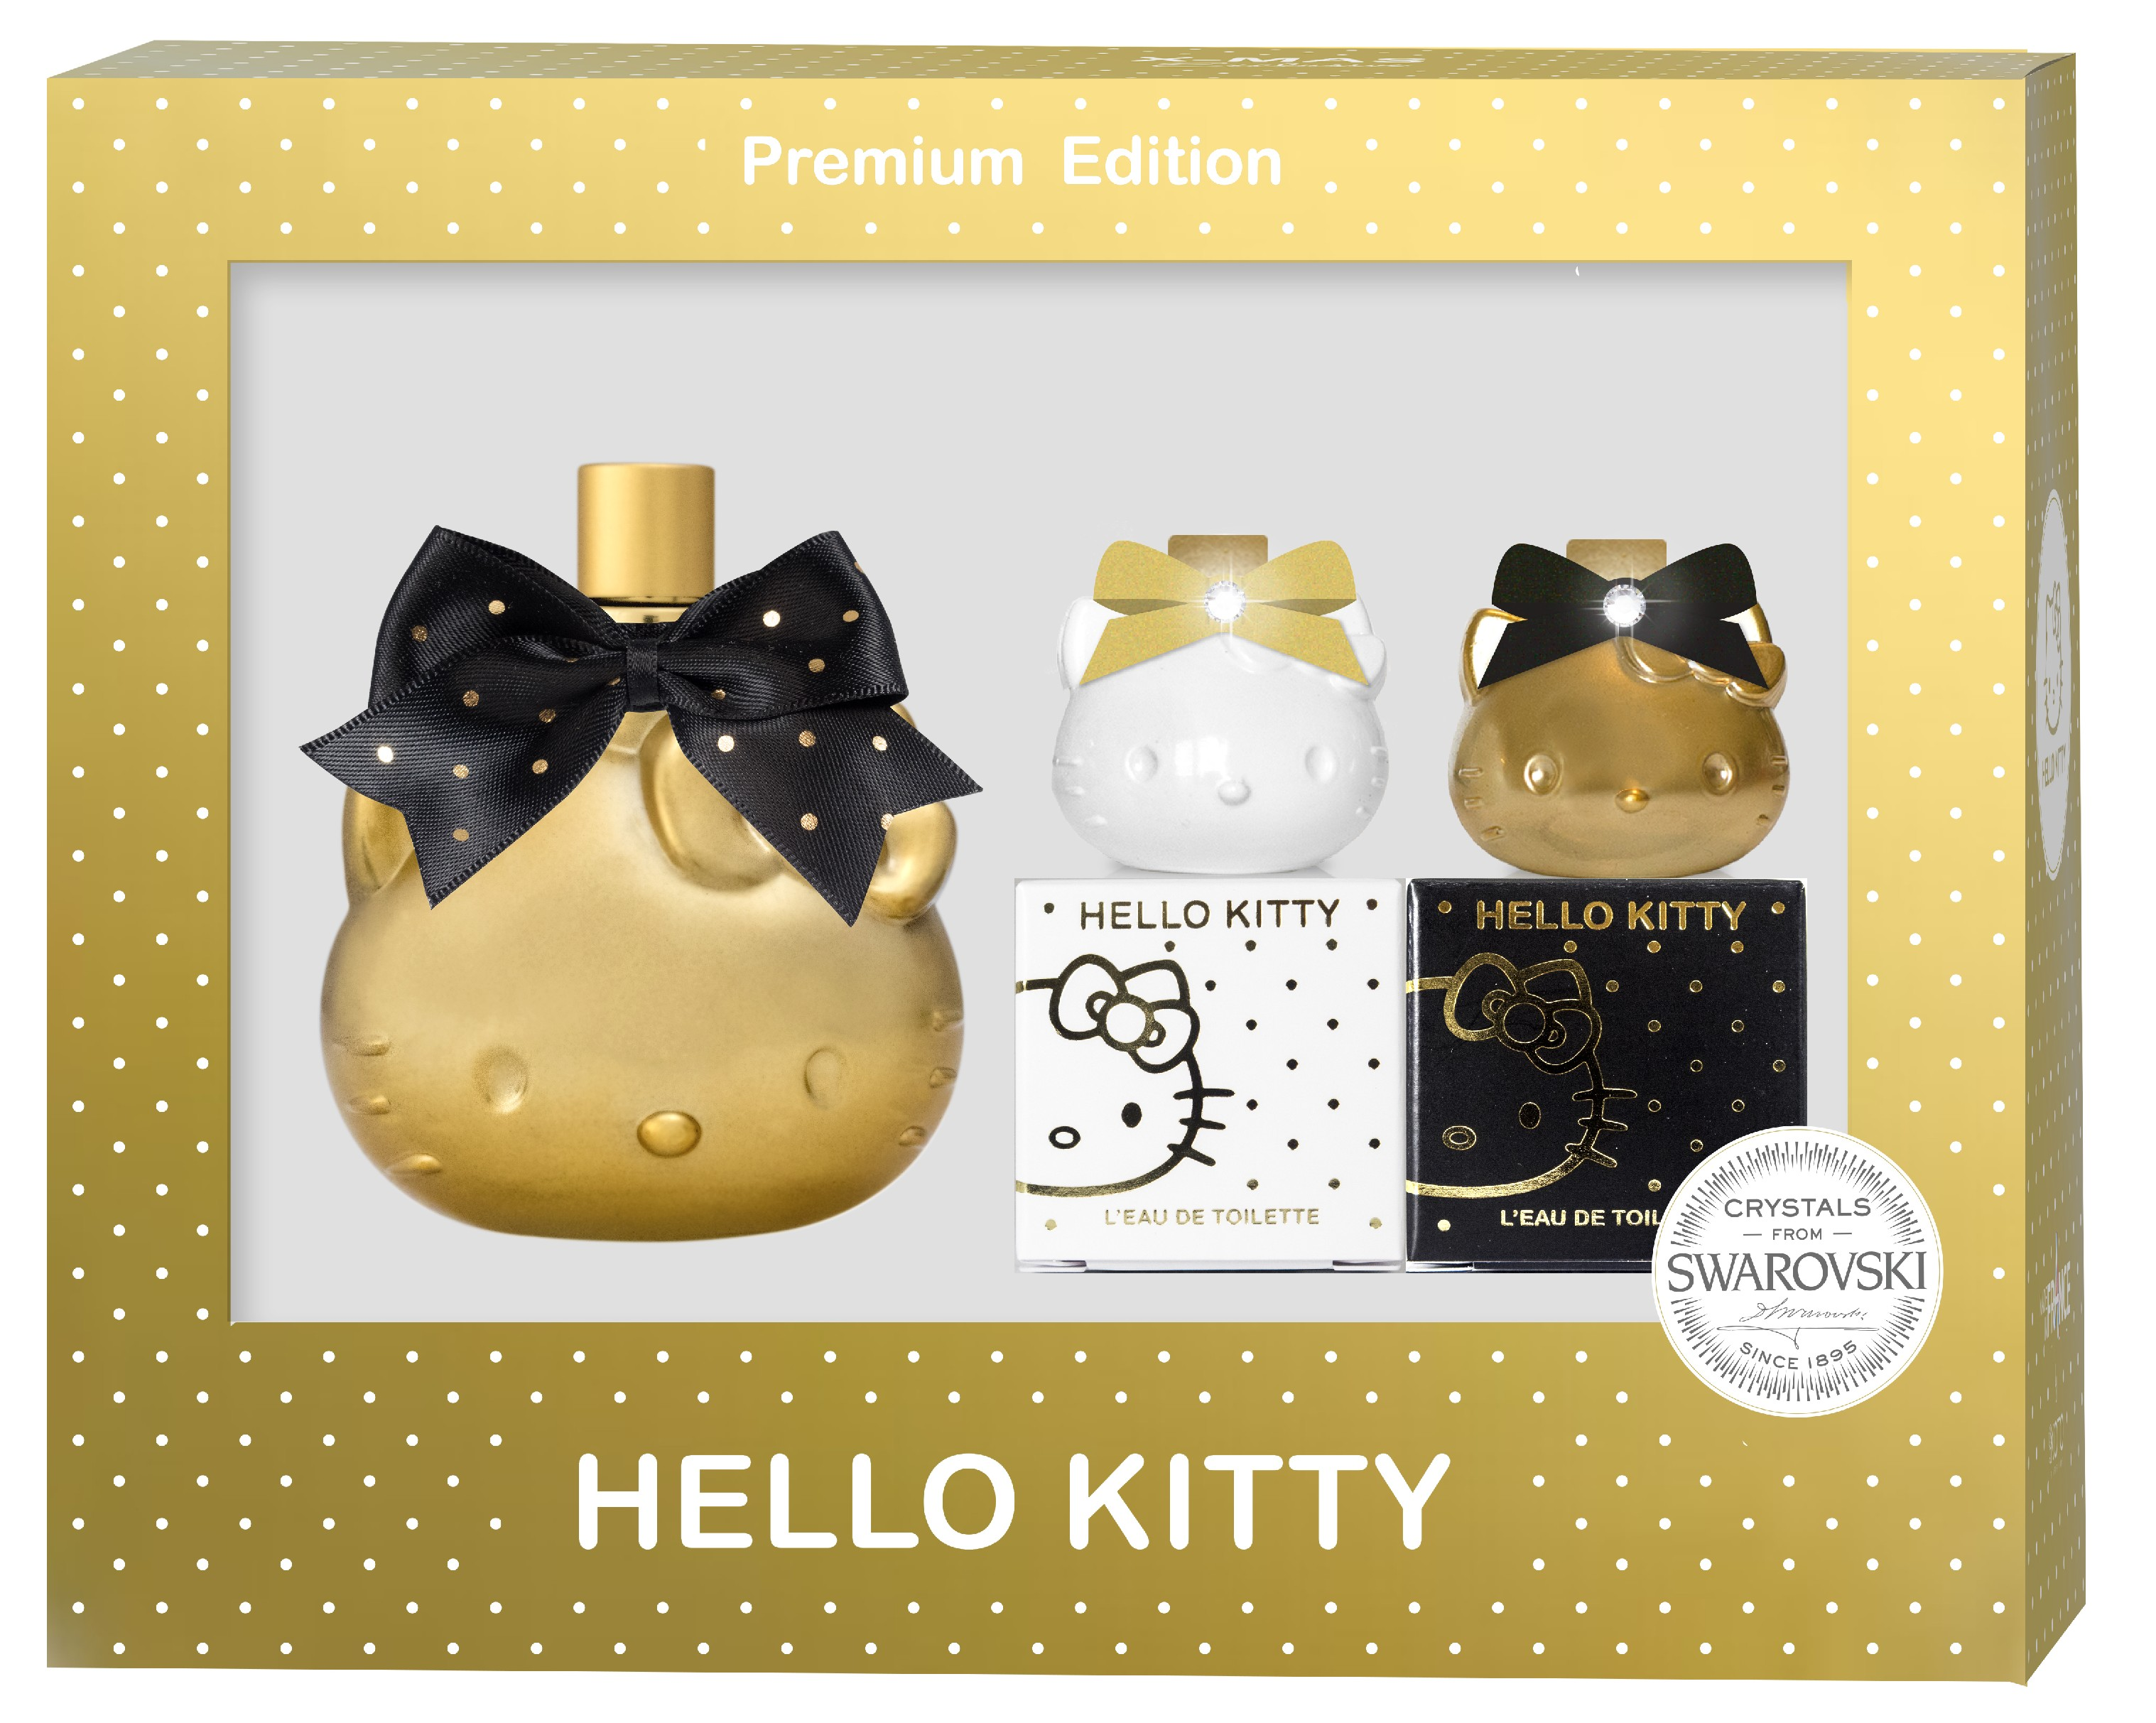 HELLO KITTY PREMIUM Vienočný SET 1x 40ml 2x mini parfumy